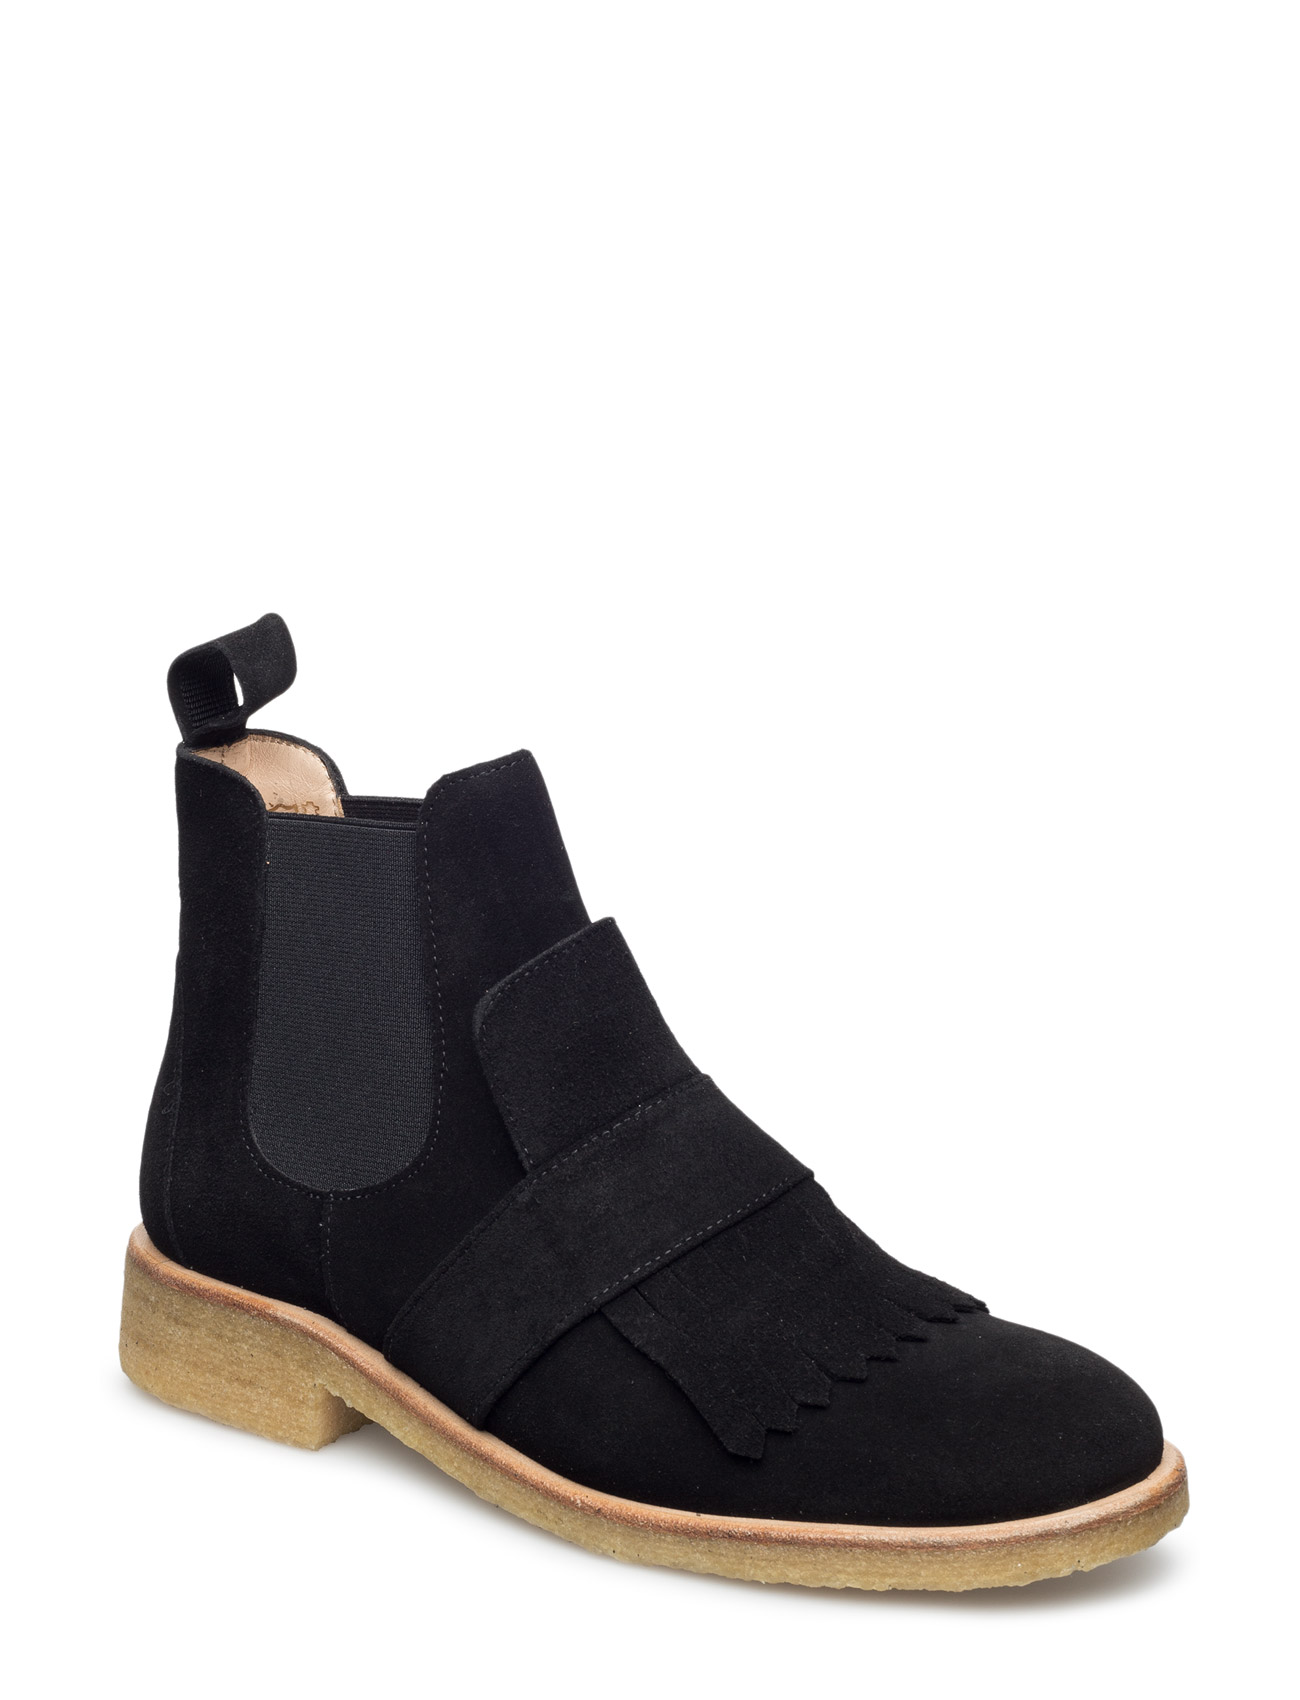 Image of Booties - Flat - With Elastic Shoes Boots Chelsea Boots Ankle Boot - Flat Sort ANGULUS (3452075707)